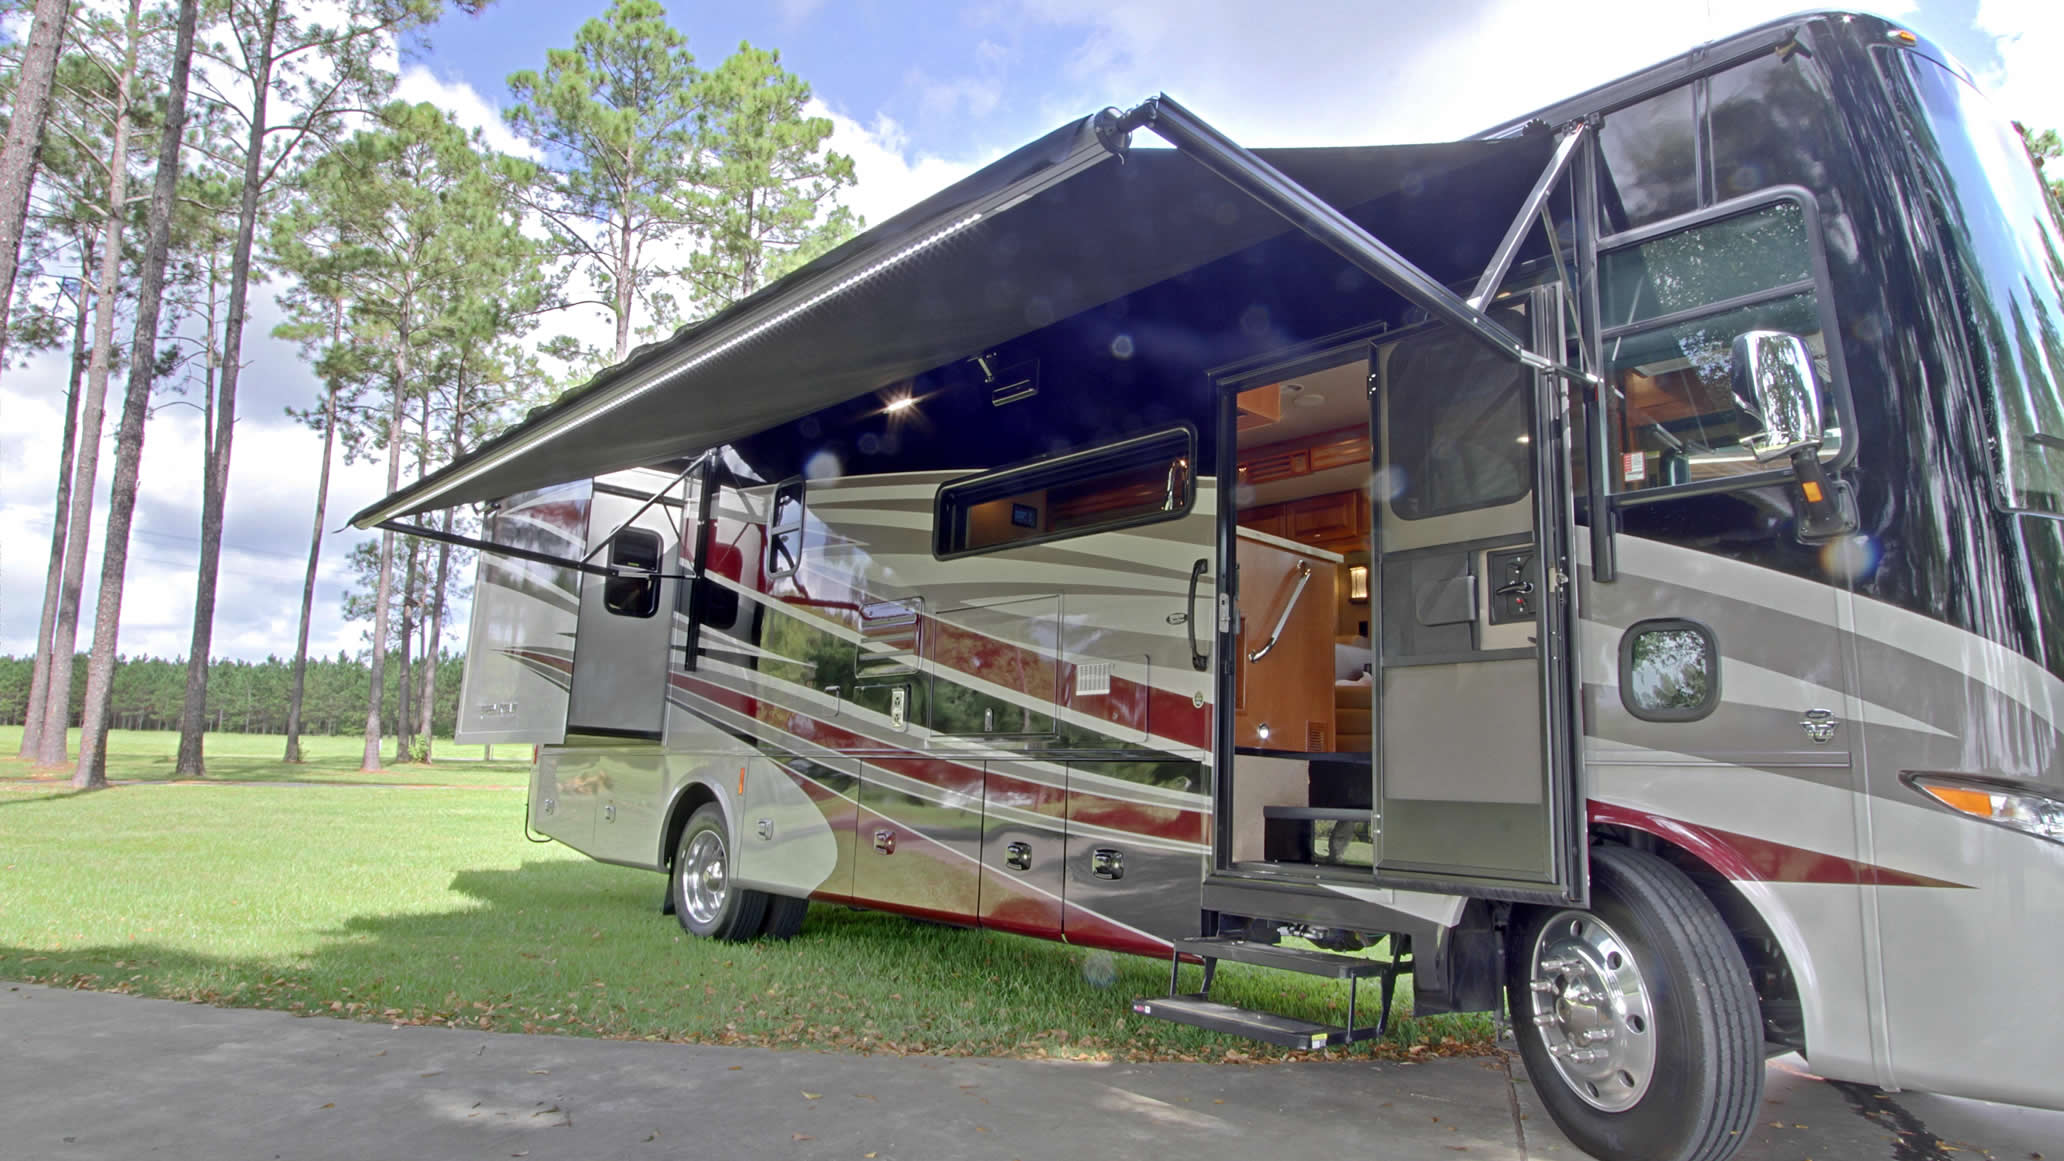 Louisiana RV Rental - DeRidder Leesville Fort Polk Shreveport Alexandria Lake Charles